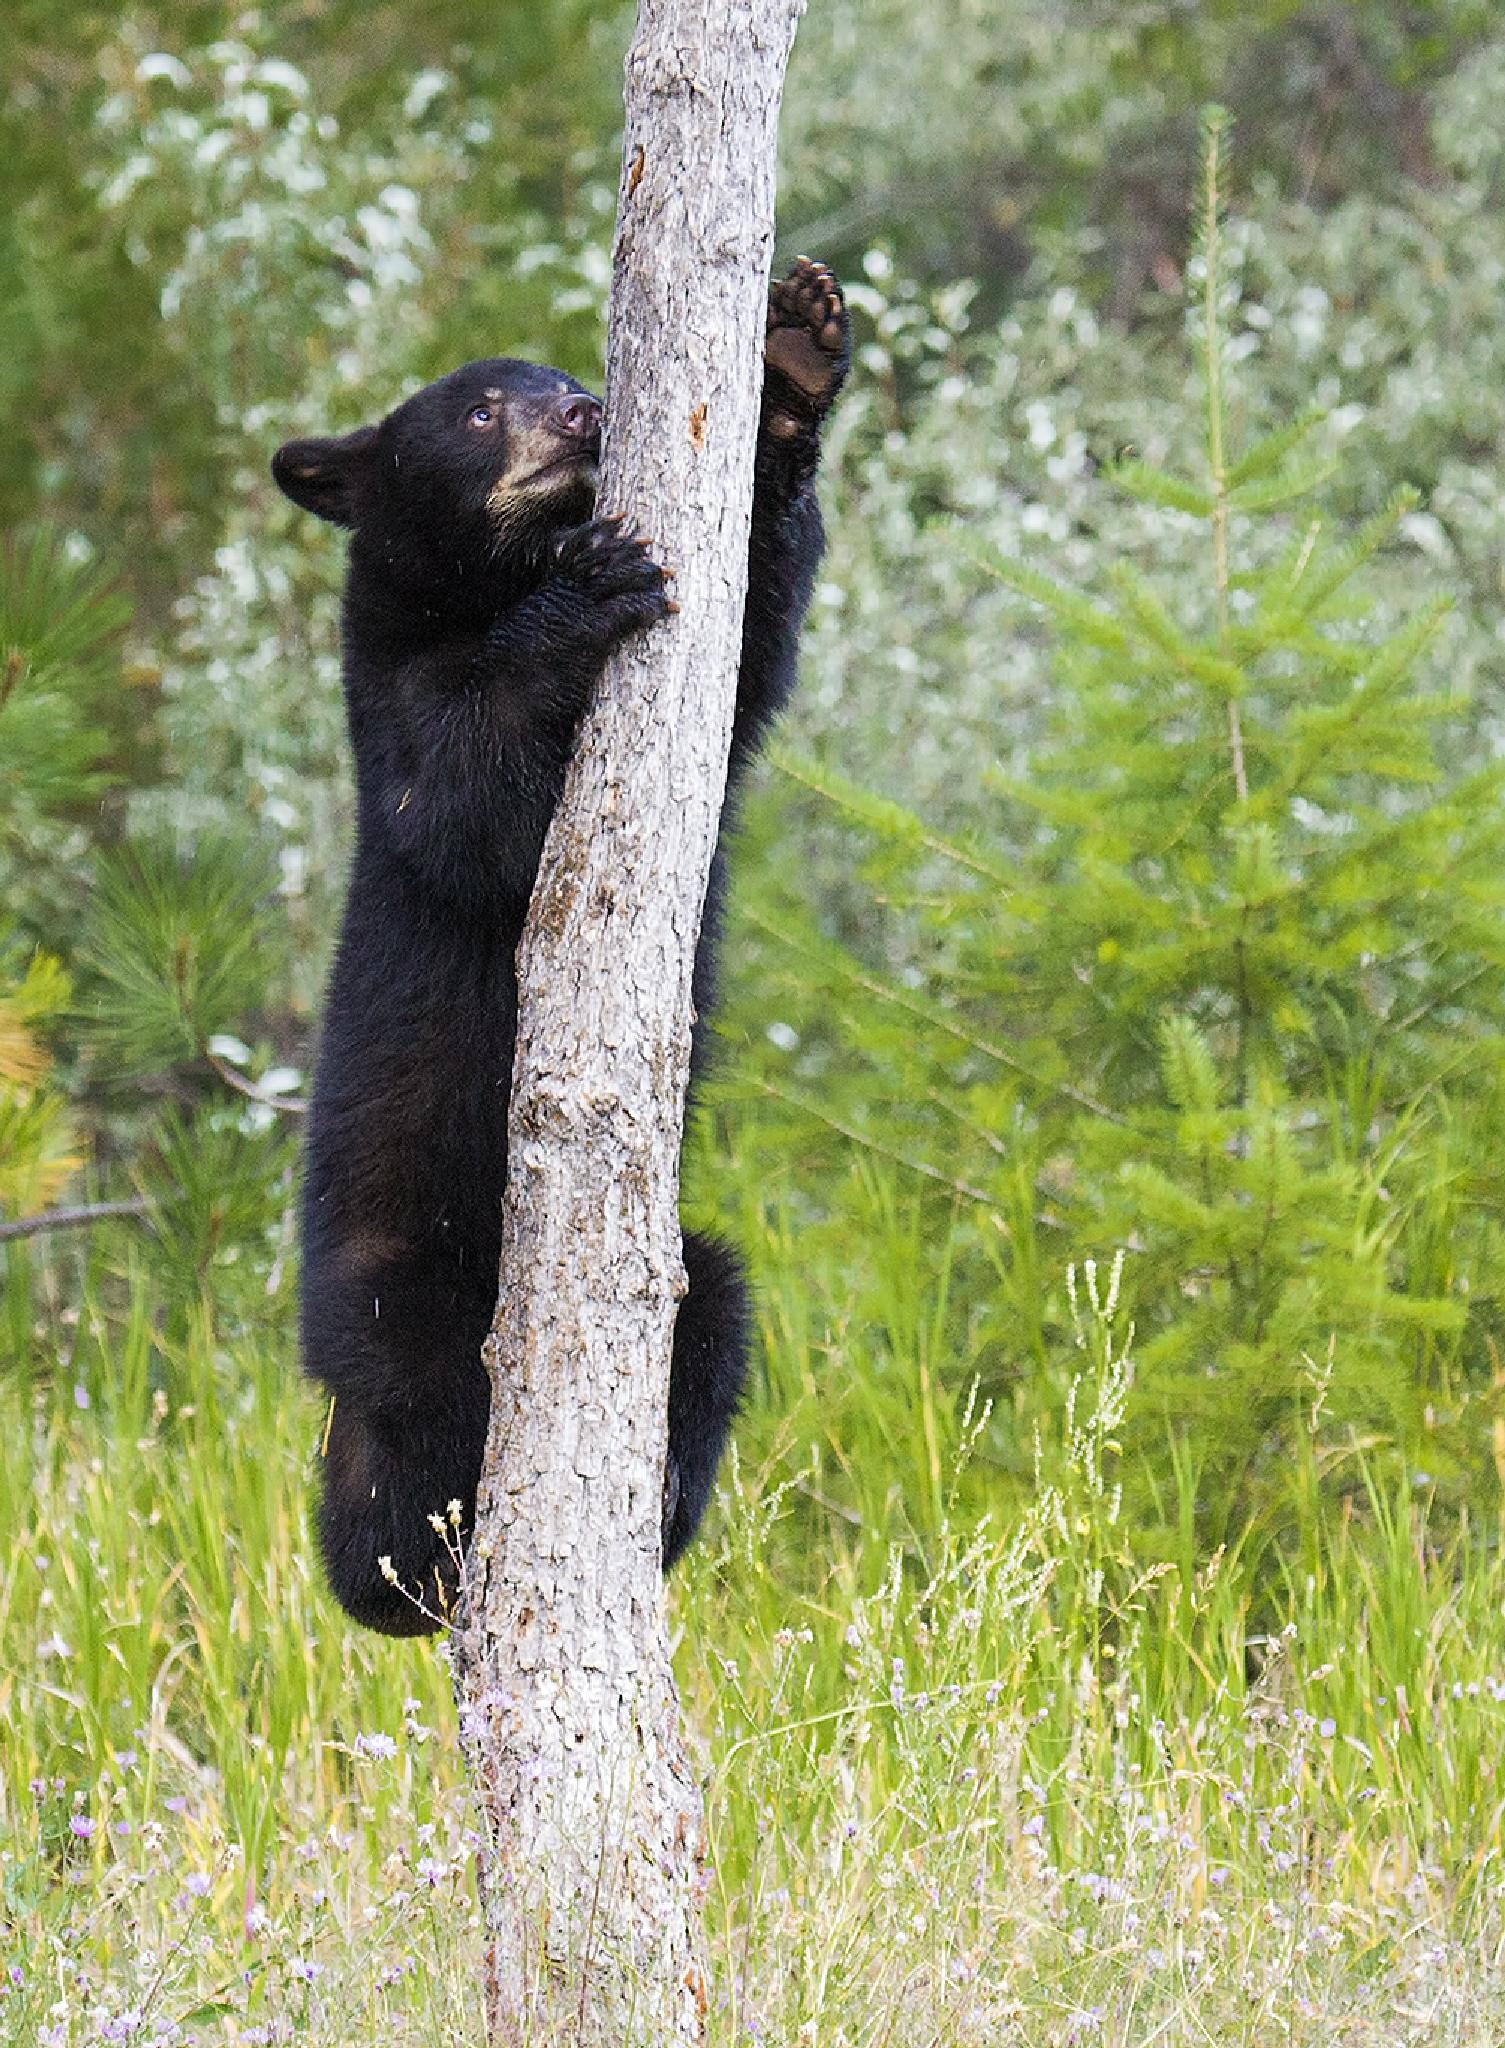 Black Bear Cub by Walter Nussbaumer